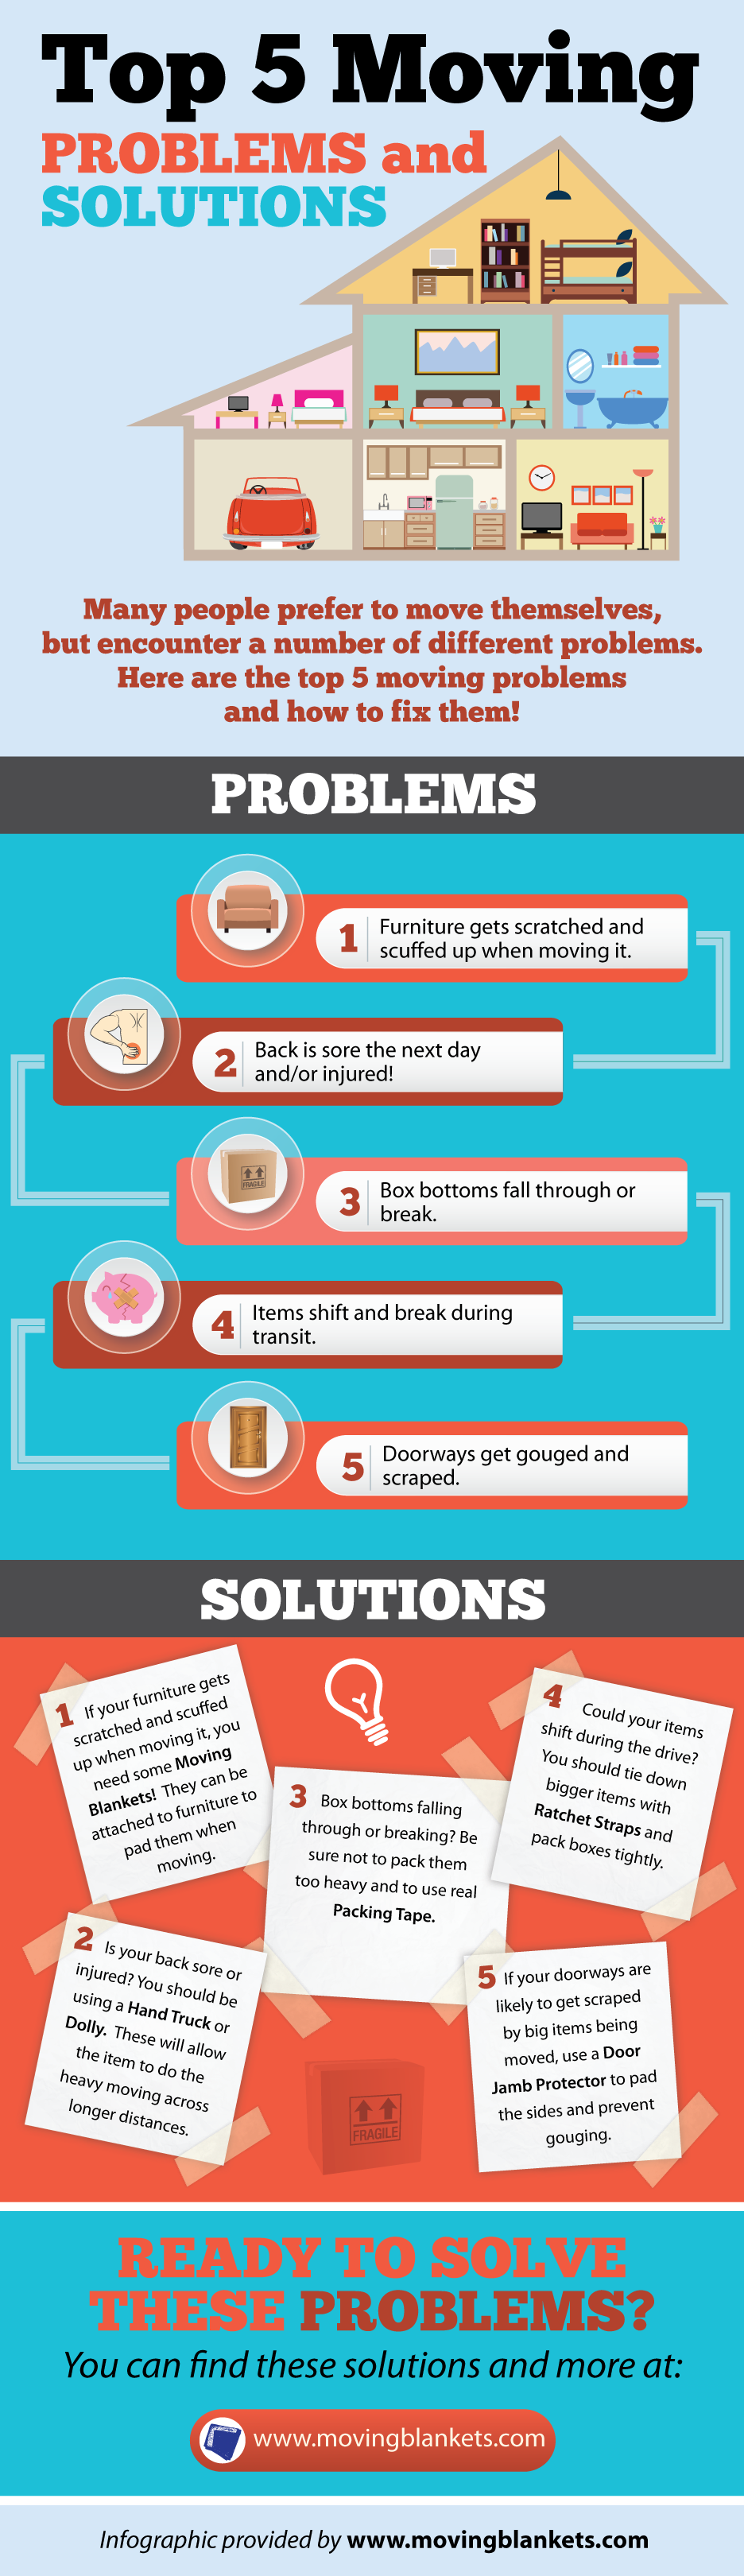 Top 5 Moving Problems and Solutions Infographic